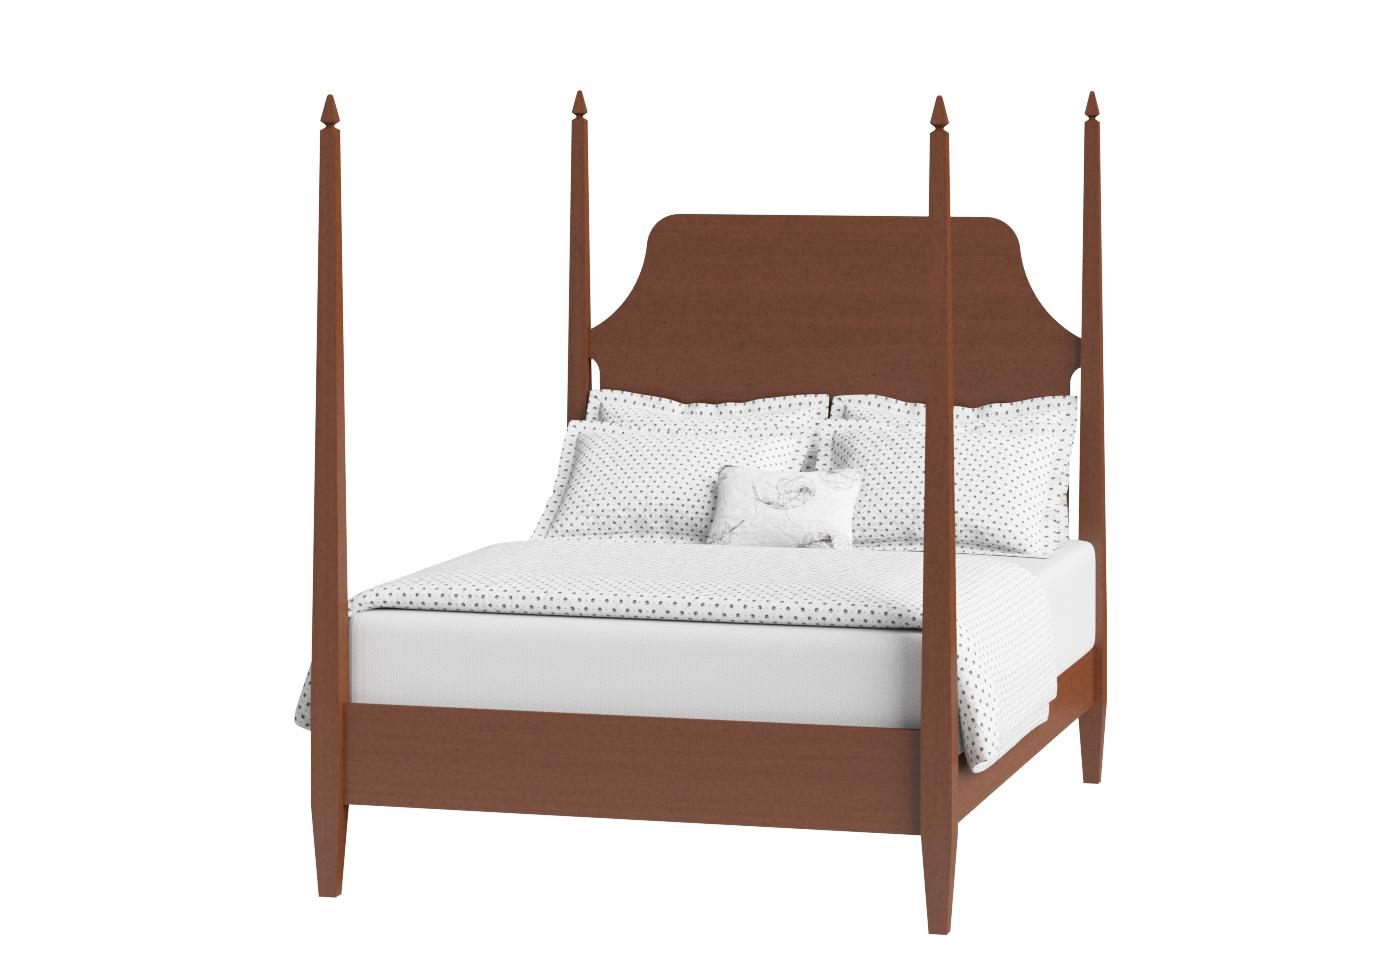 Cutout of Turner four poster wood bed in a dark cherry finish